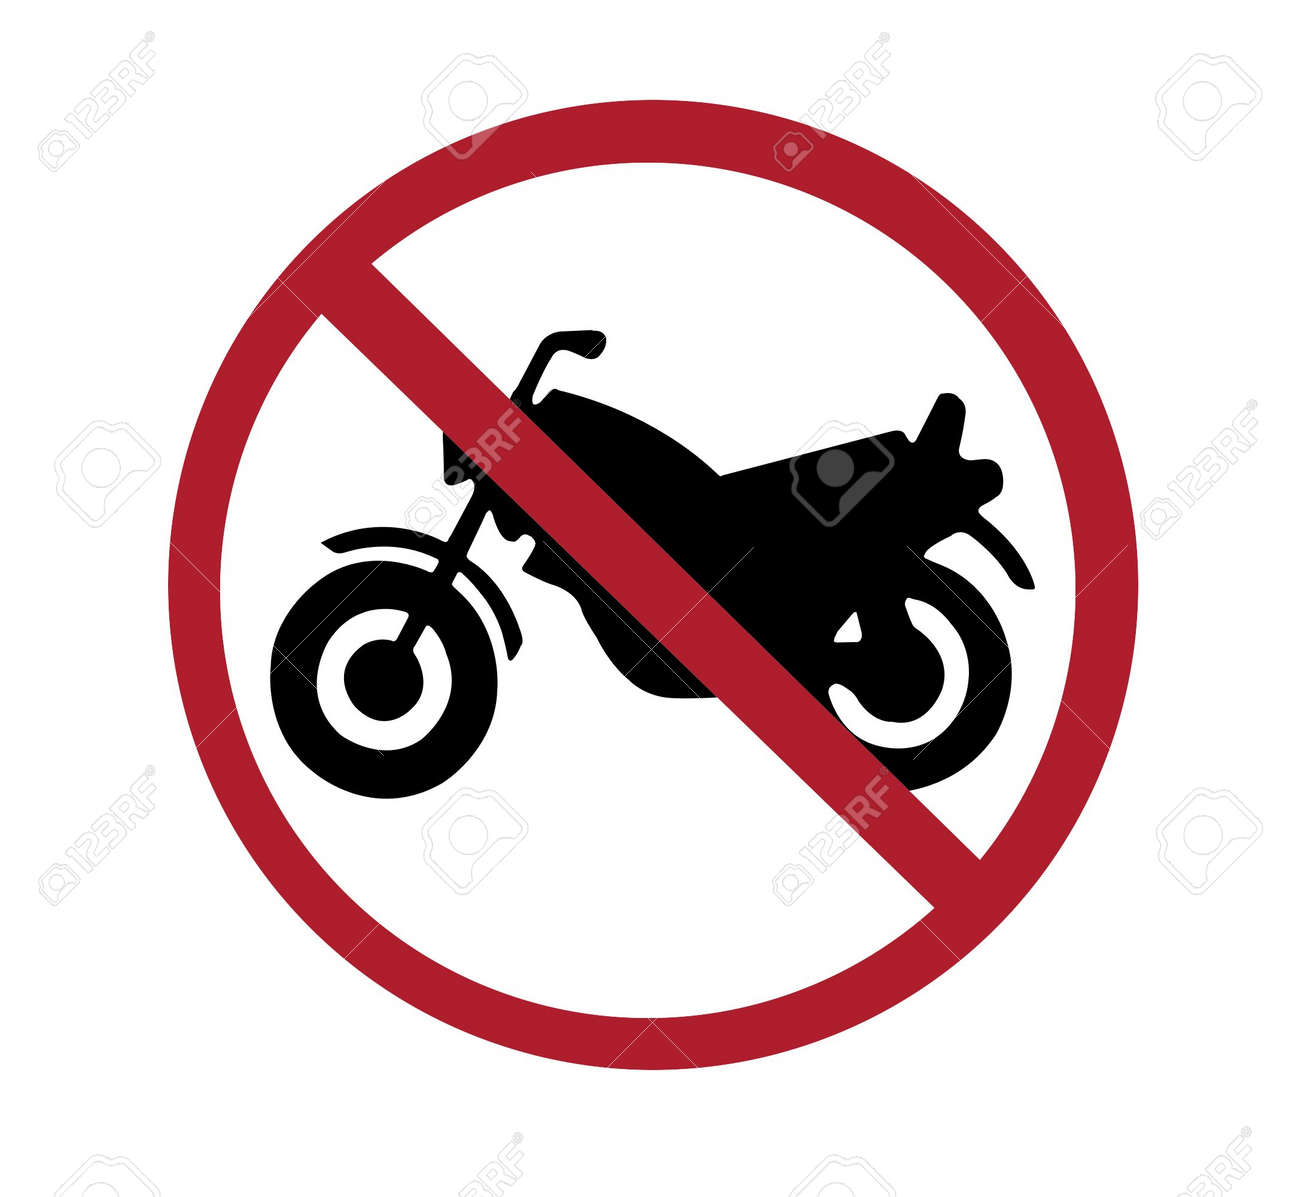 sign - no motorcycles, black and red on white, with paths Stock Photo - 6637477